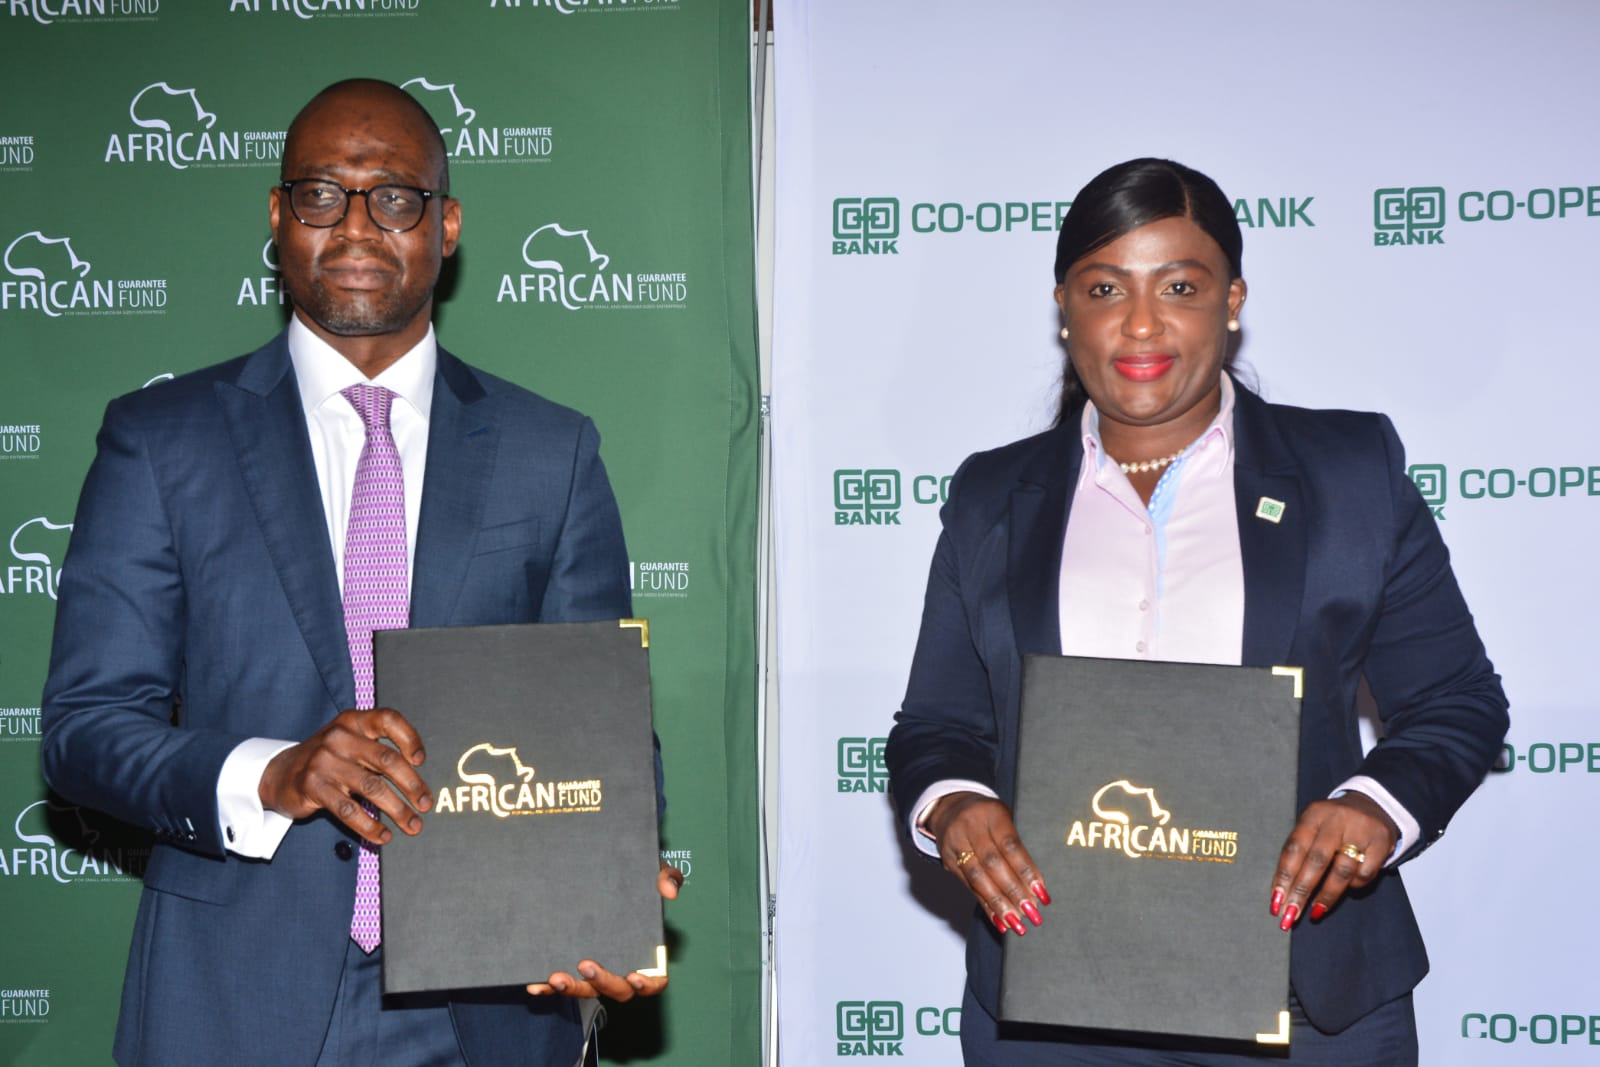 Coop Bank partners with African Guarantee Fund (AGF) to boost Green Financing in Kenya